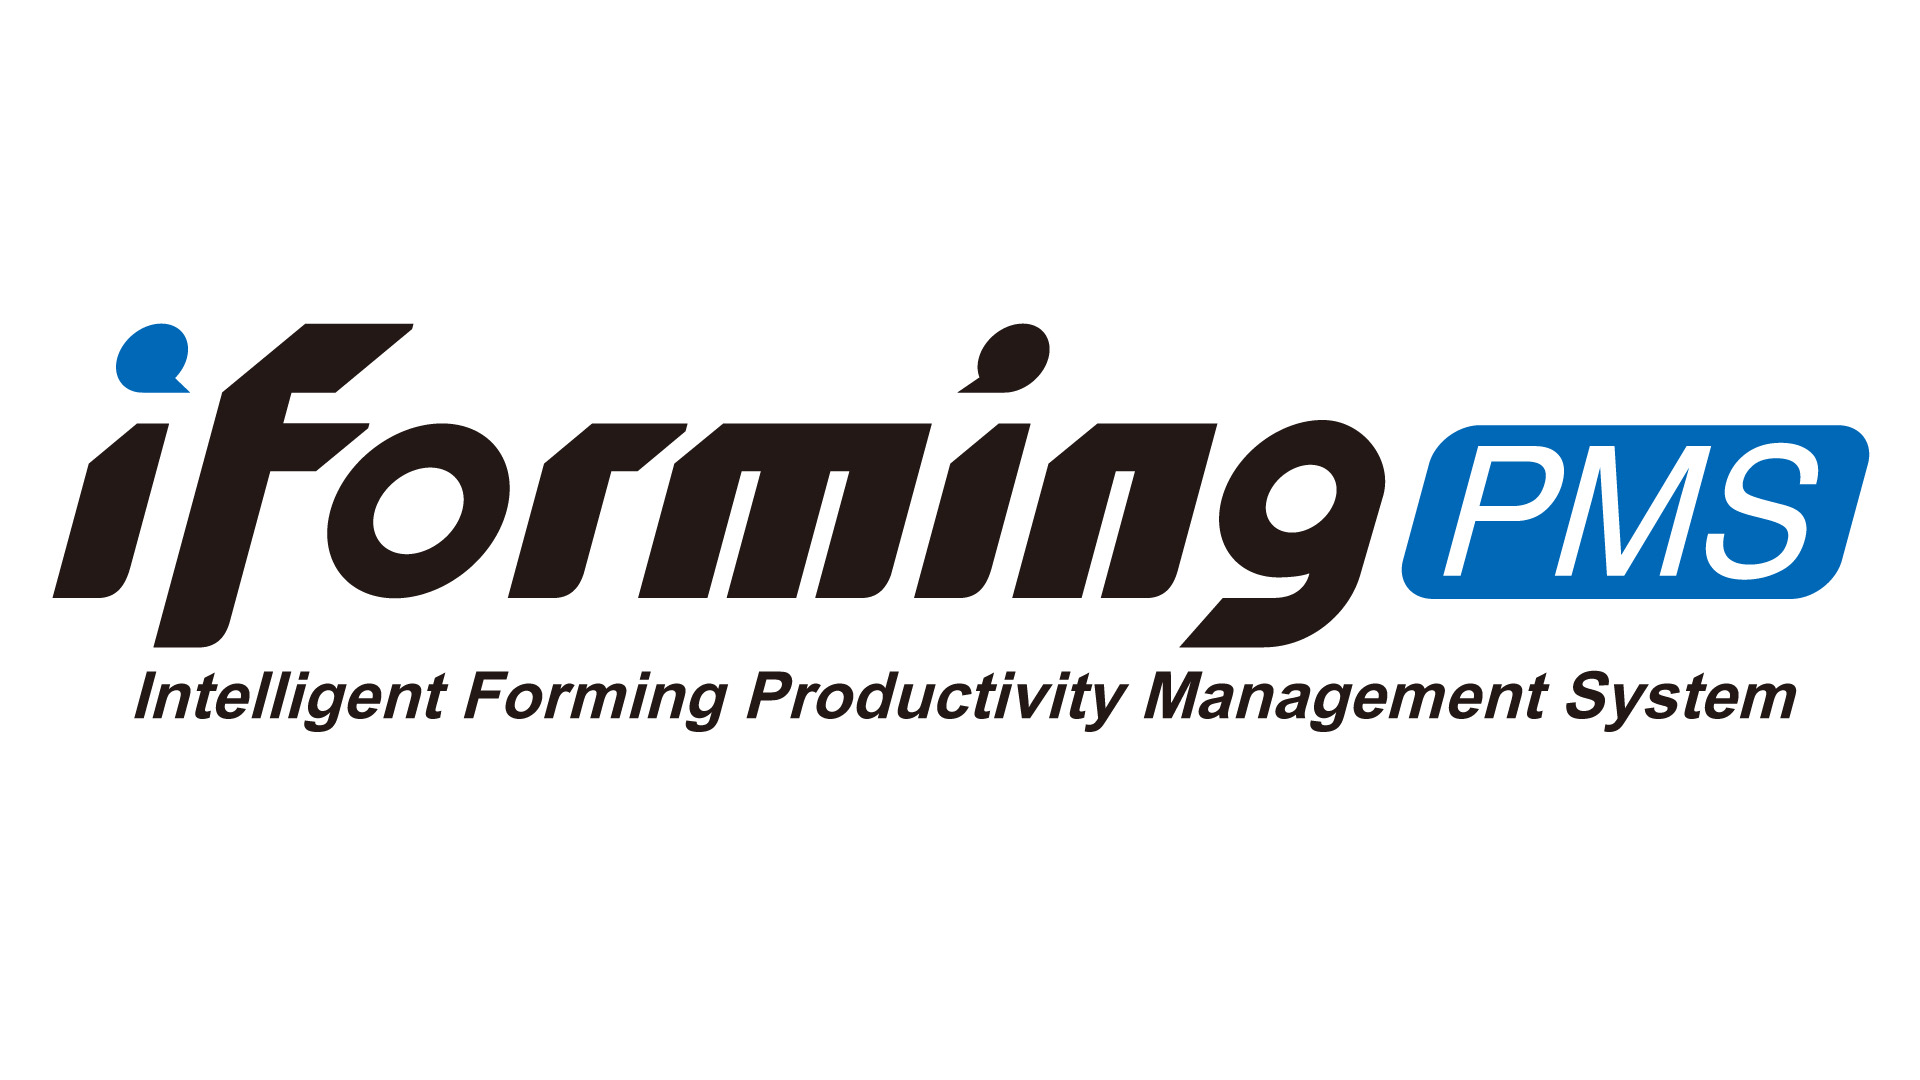 Intelligent Forming Productivity Management System